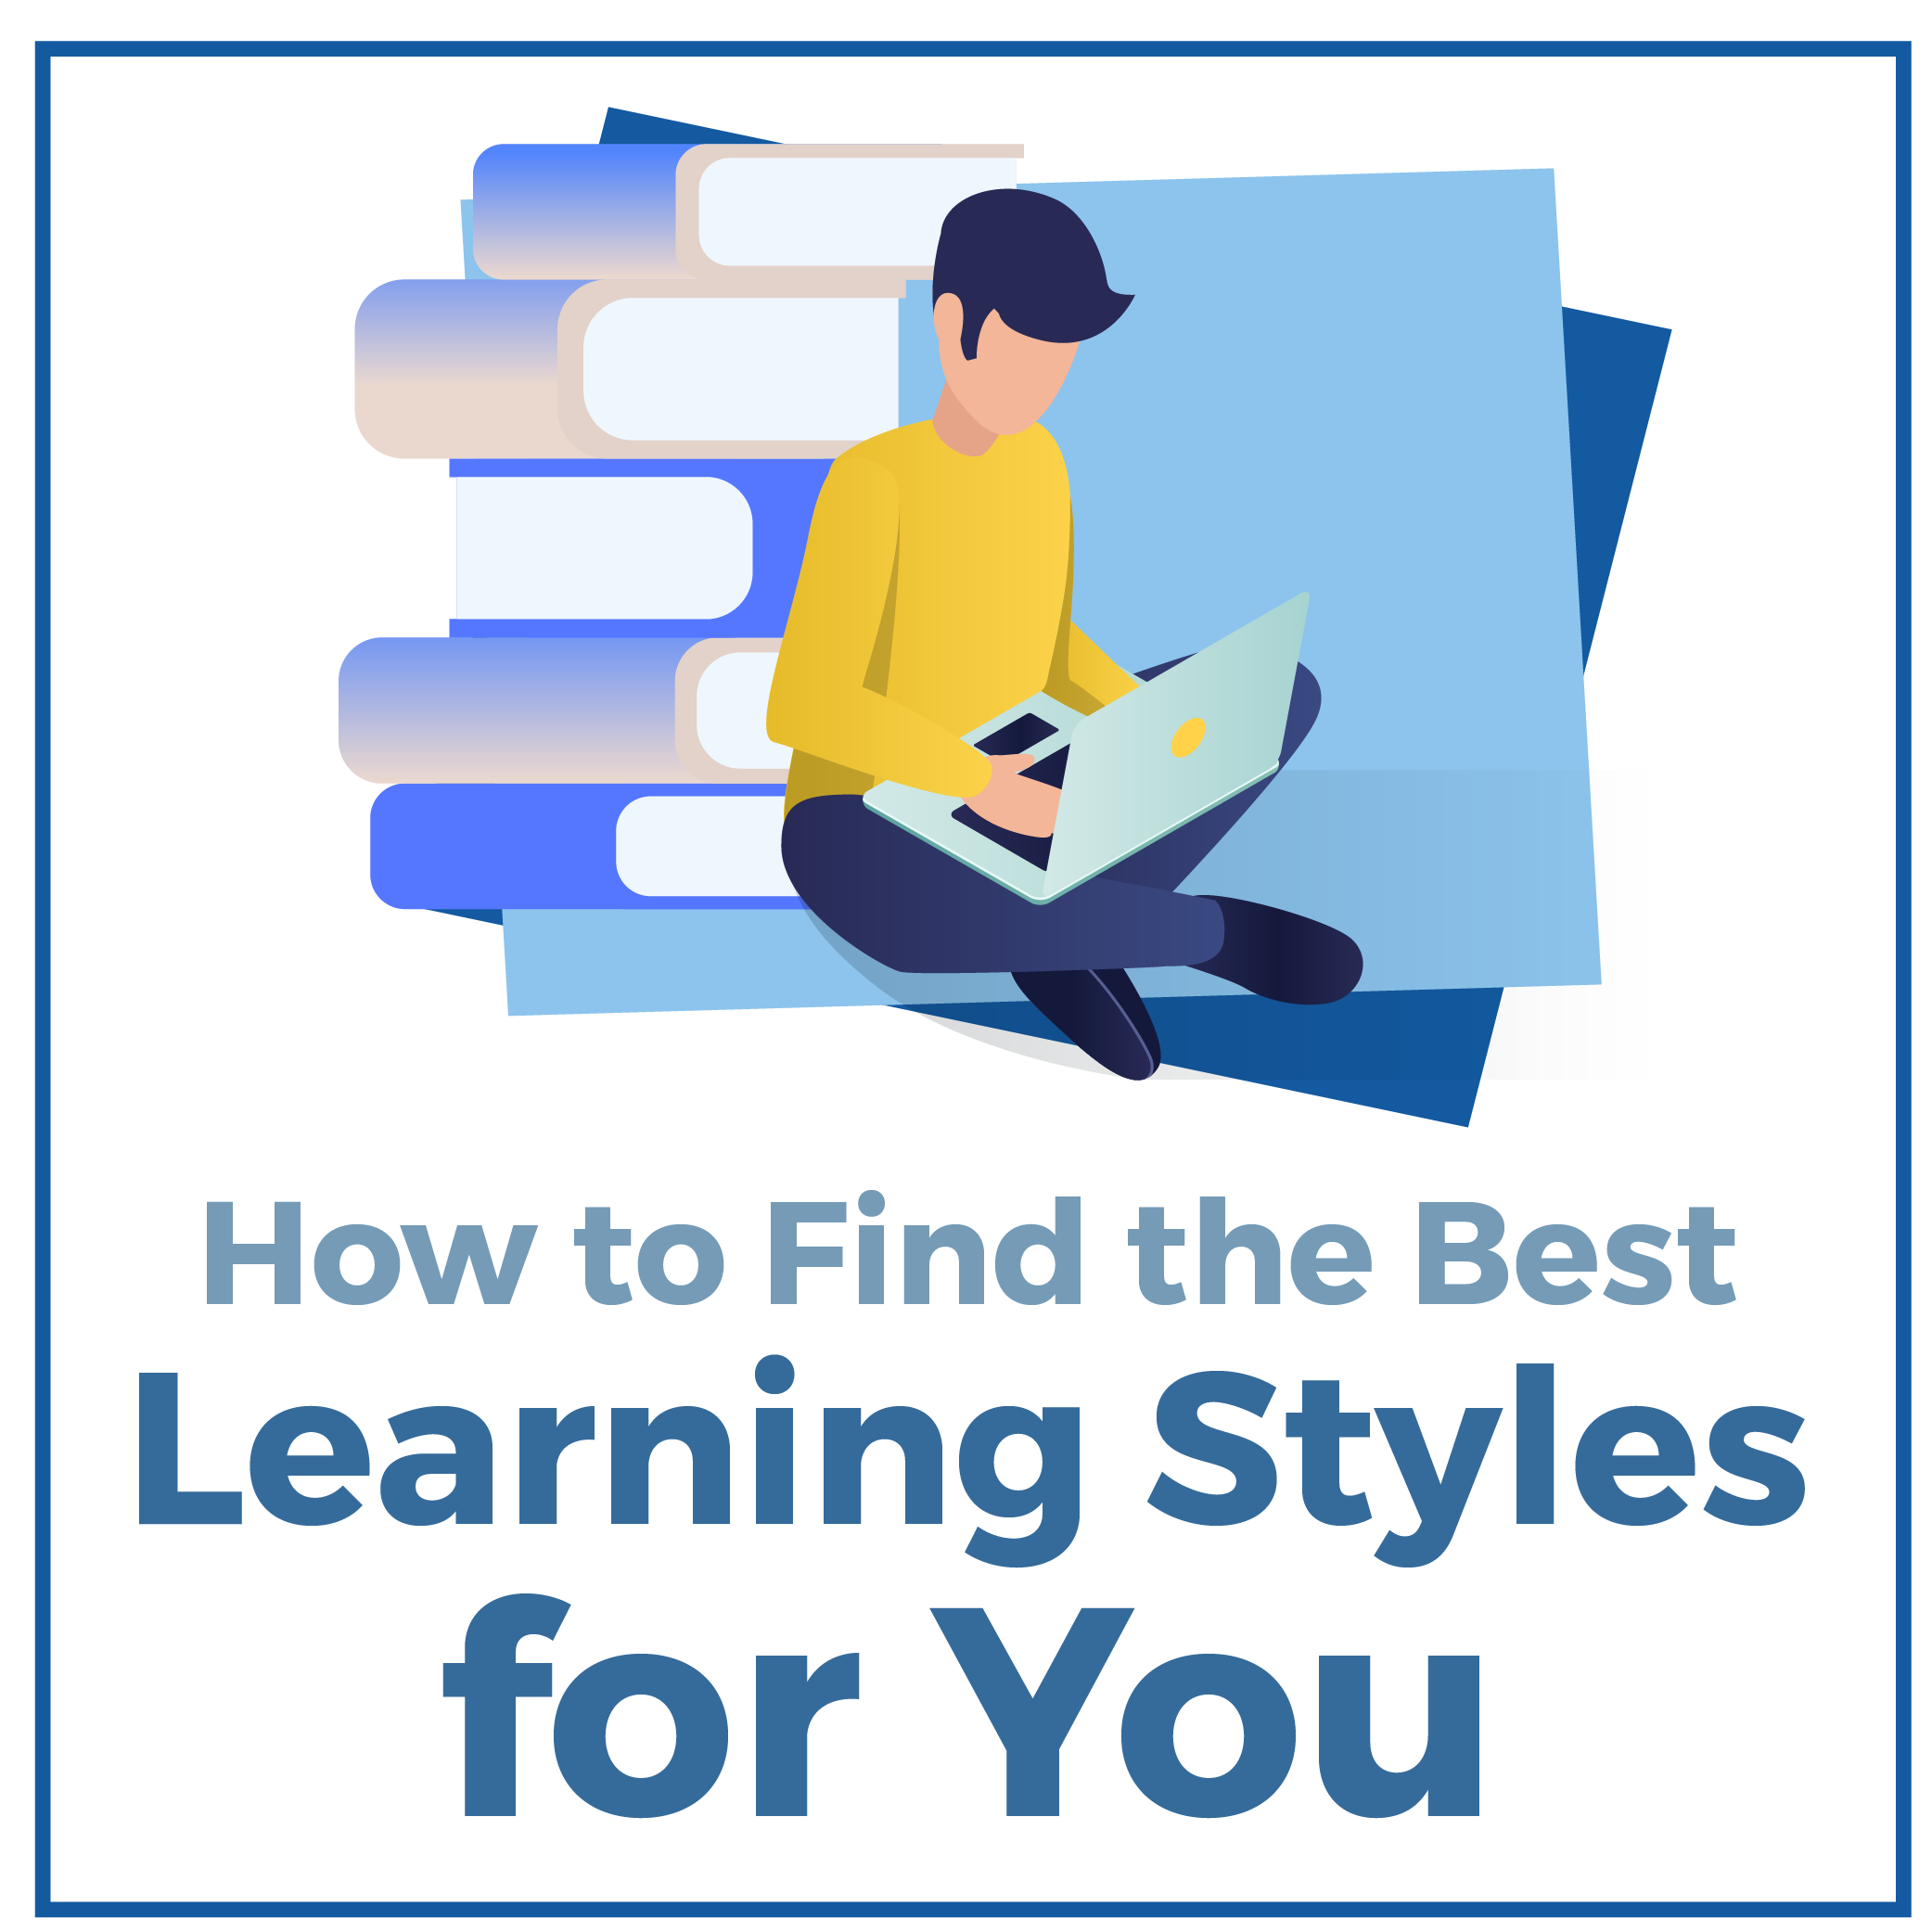 How to Find the Best Learning Styles for You